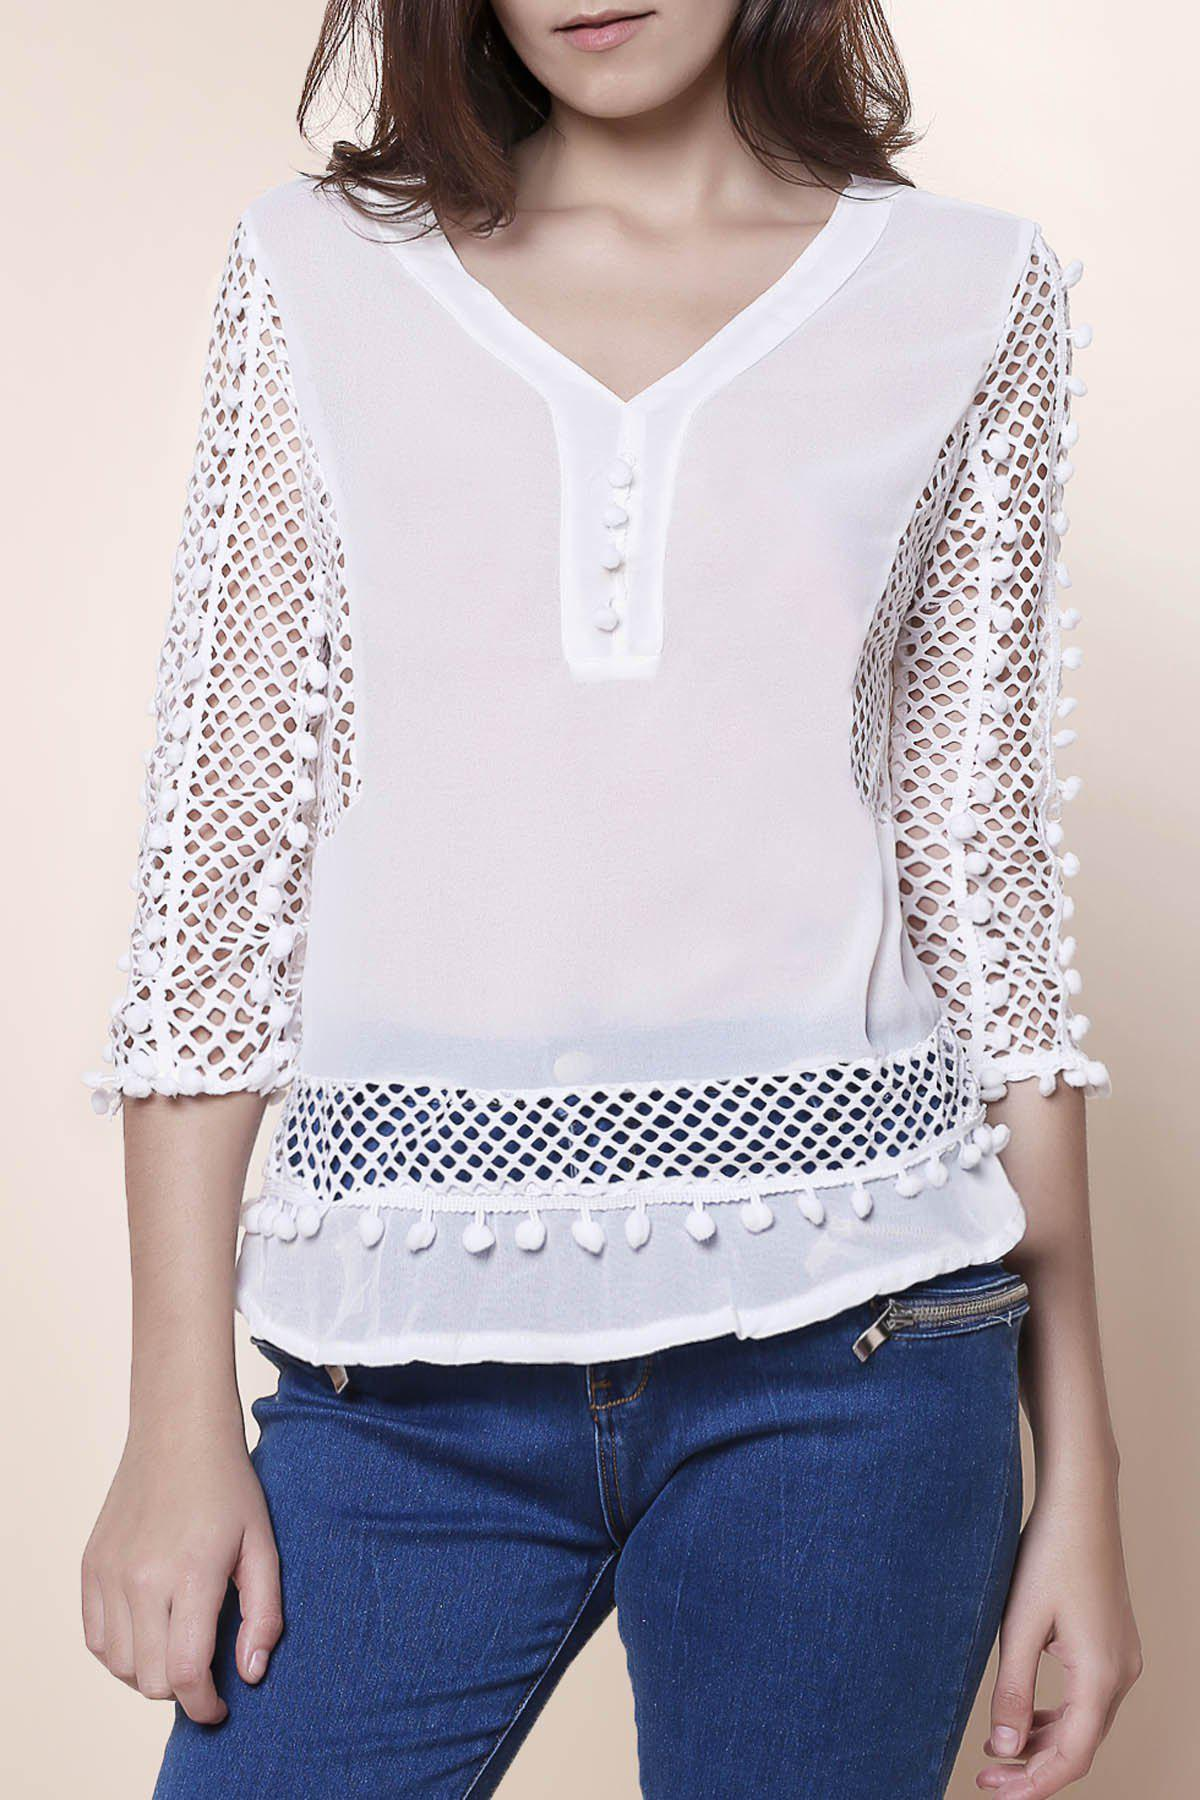 Elegant Women's V-Neck Hollow Out Fuzzy Ball Decorated 3/4 Sleeve Blouse - WHITE L